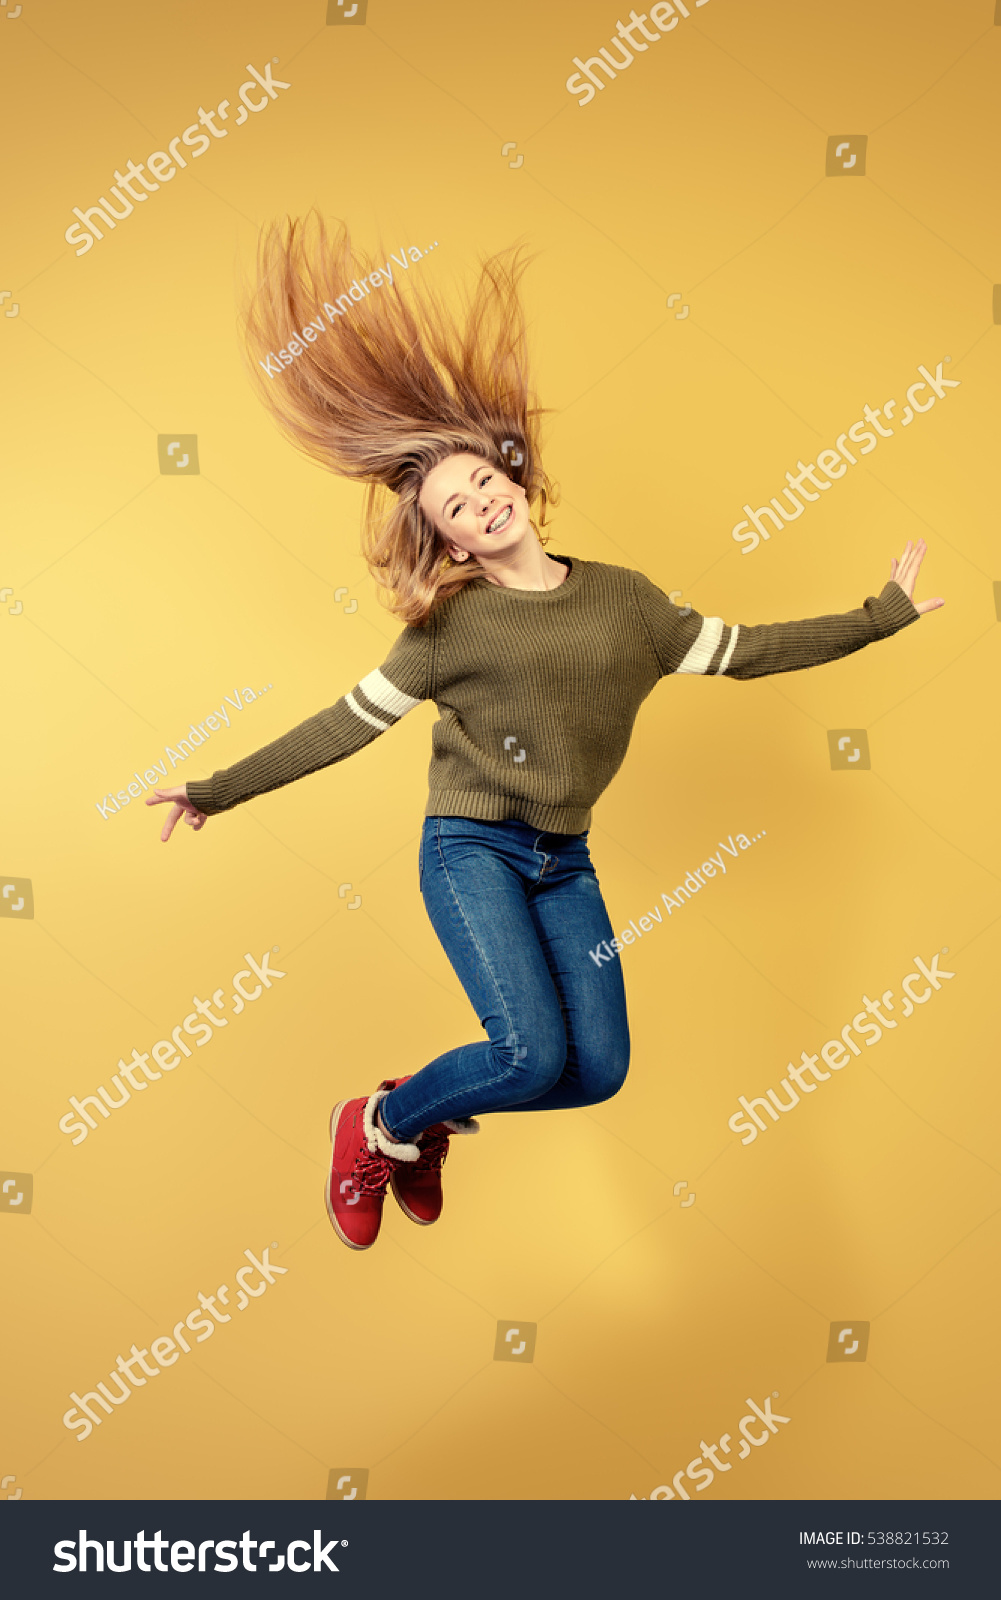 Joyful teen girl jumping over yellow background. Happiness, activity and child concept. Copy space.